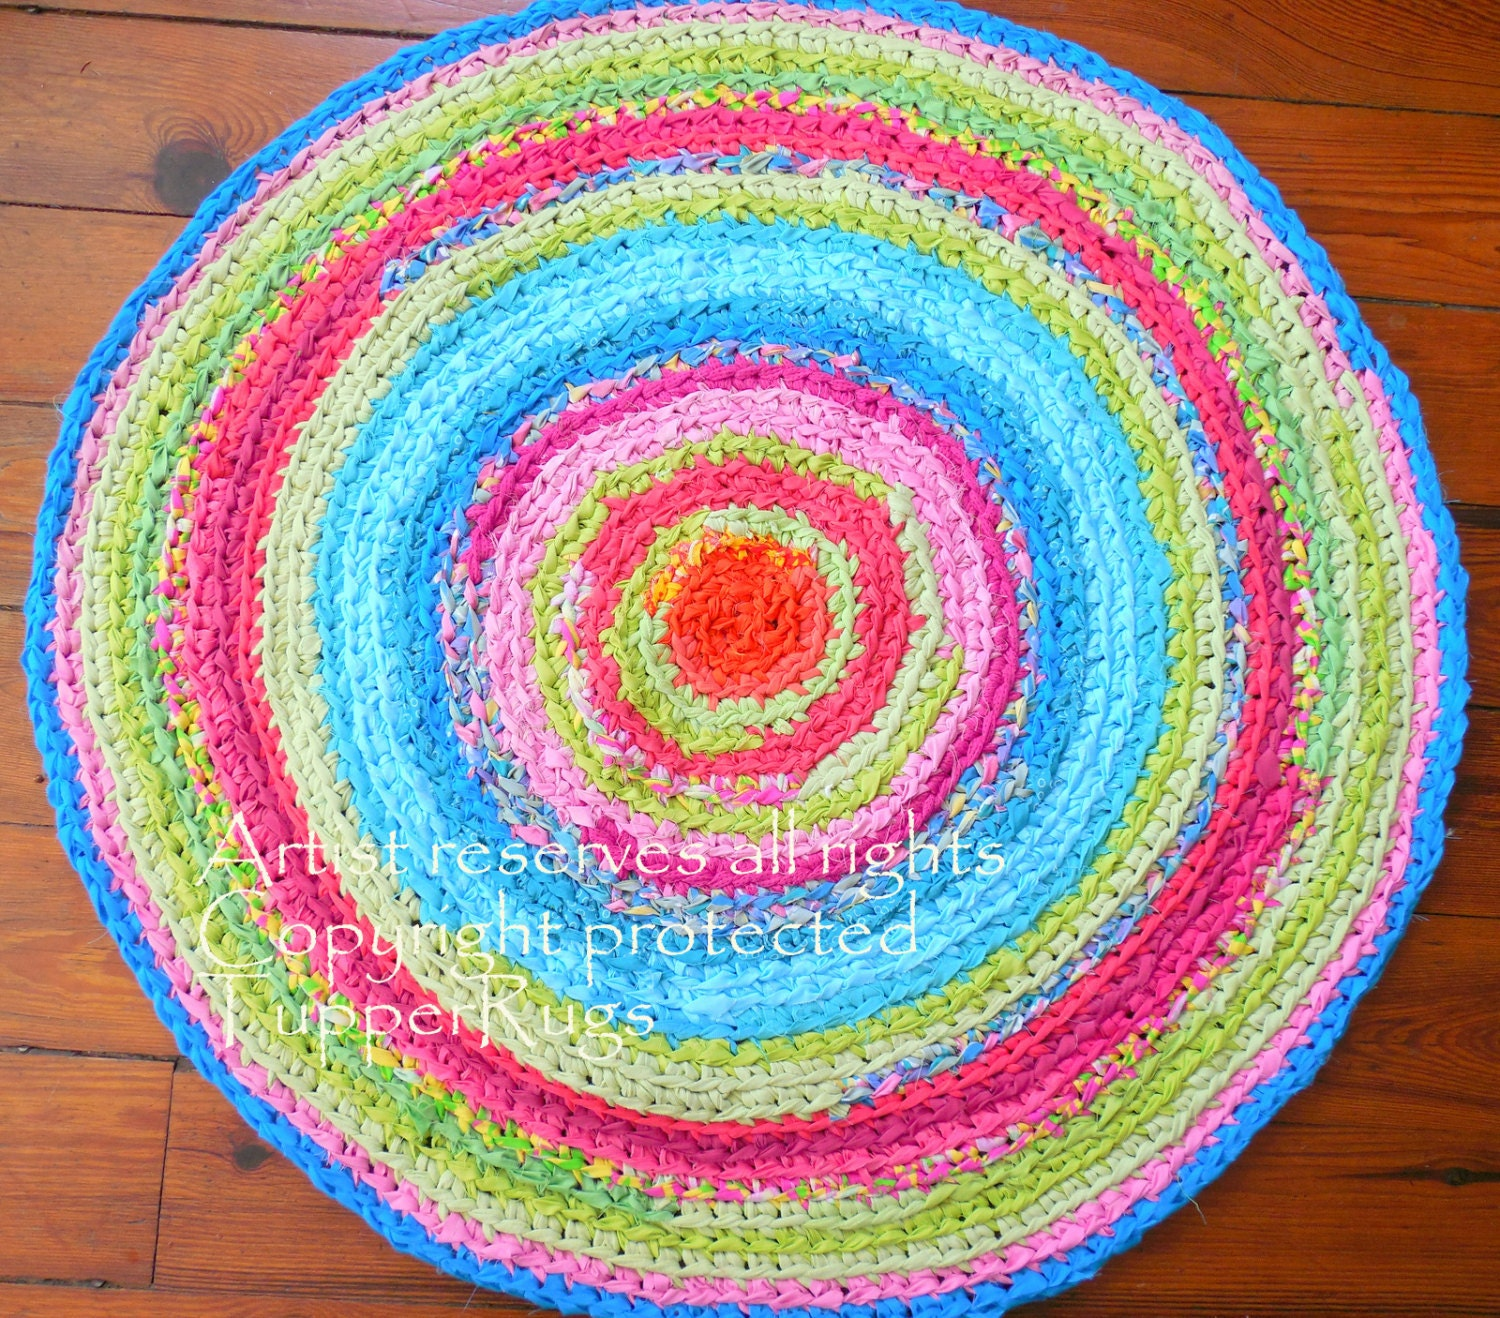 Rug Rag Rug Braided Lilly Pulitzer Inspired